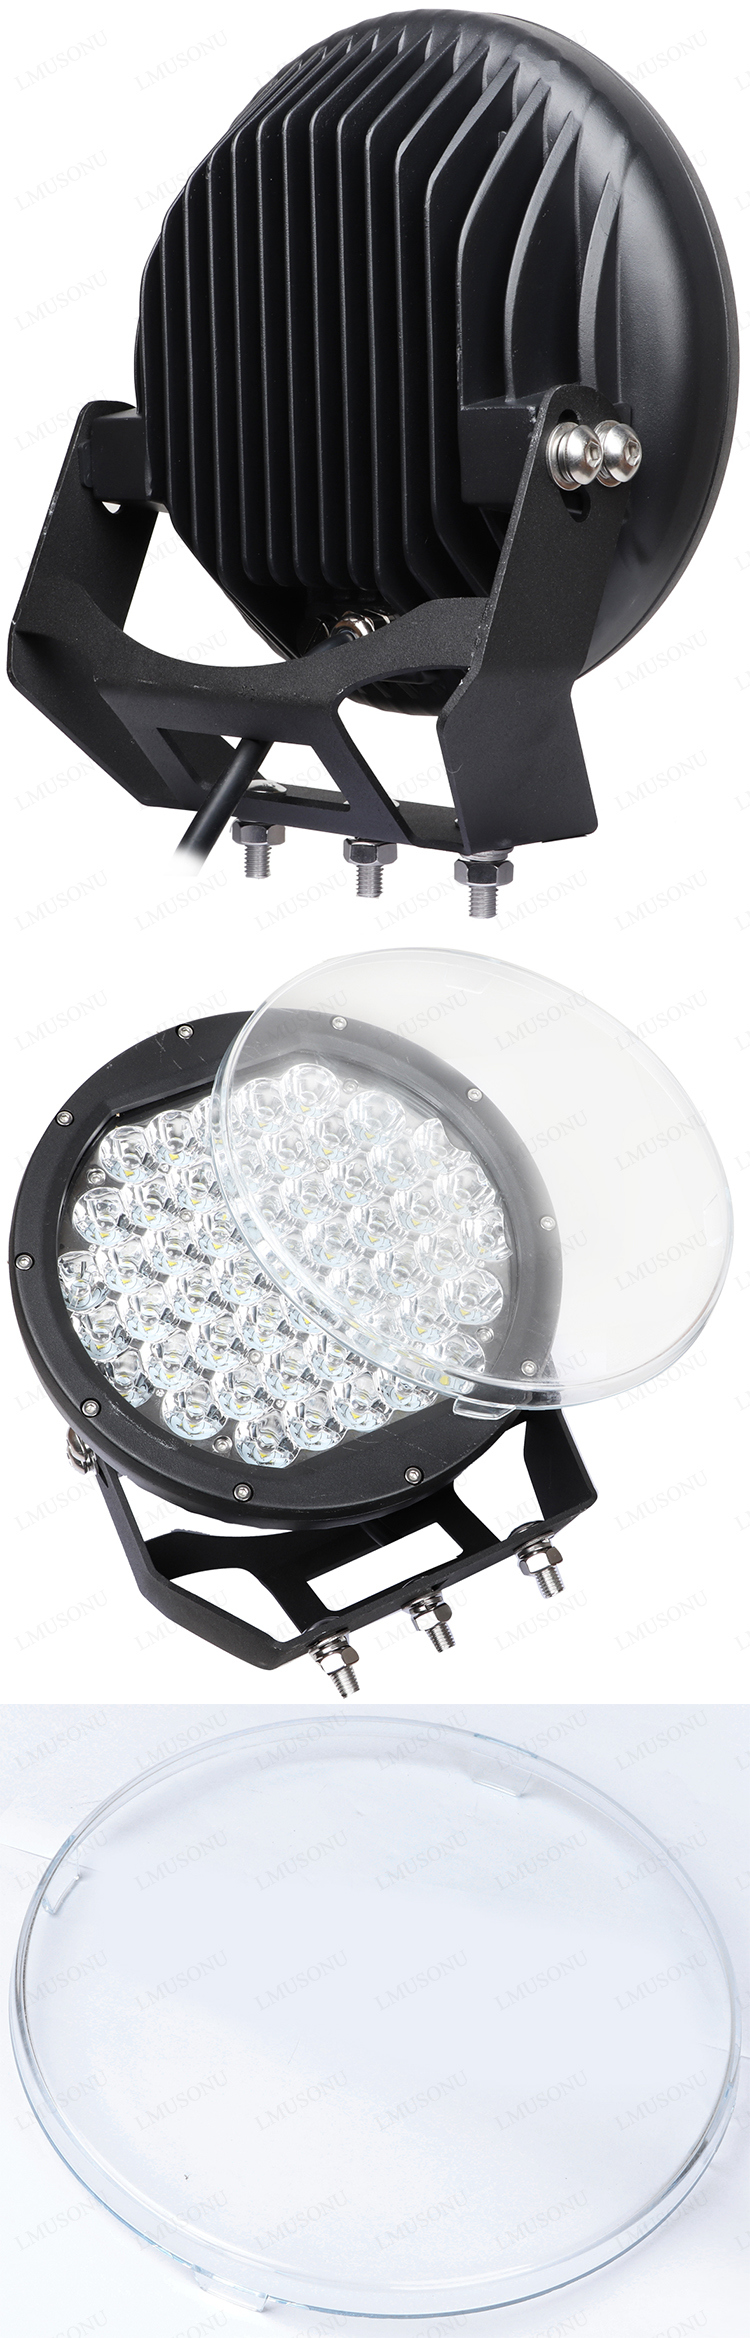 10.0 Inch 255W 4X4 Offroad Car Auxiliary LED Work Driving Light Spot Flood Beam